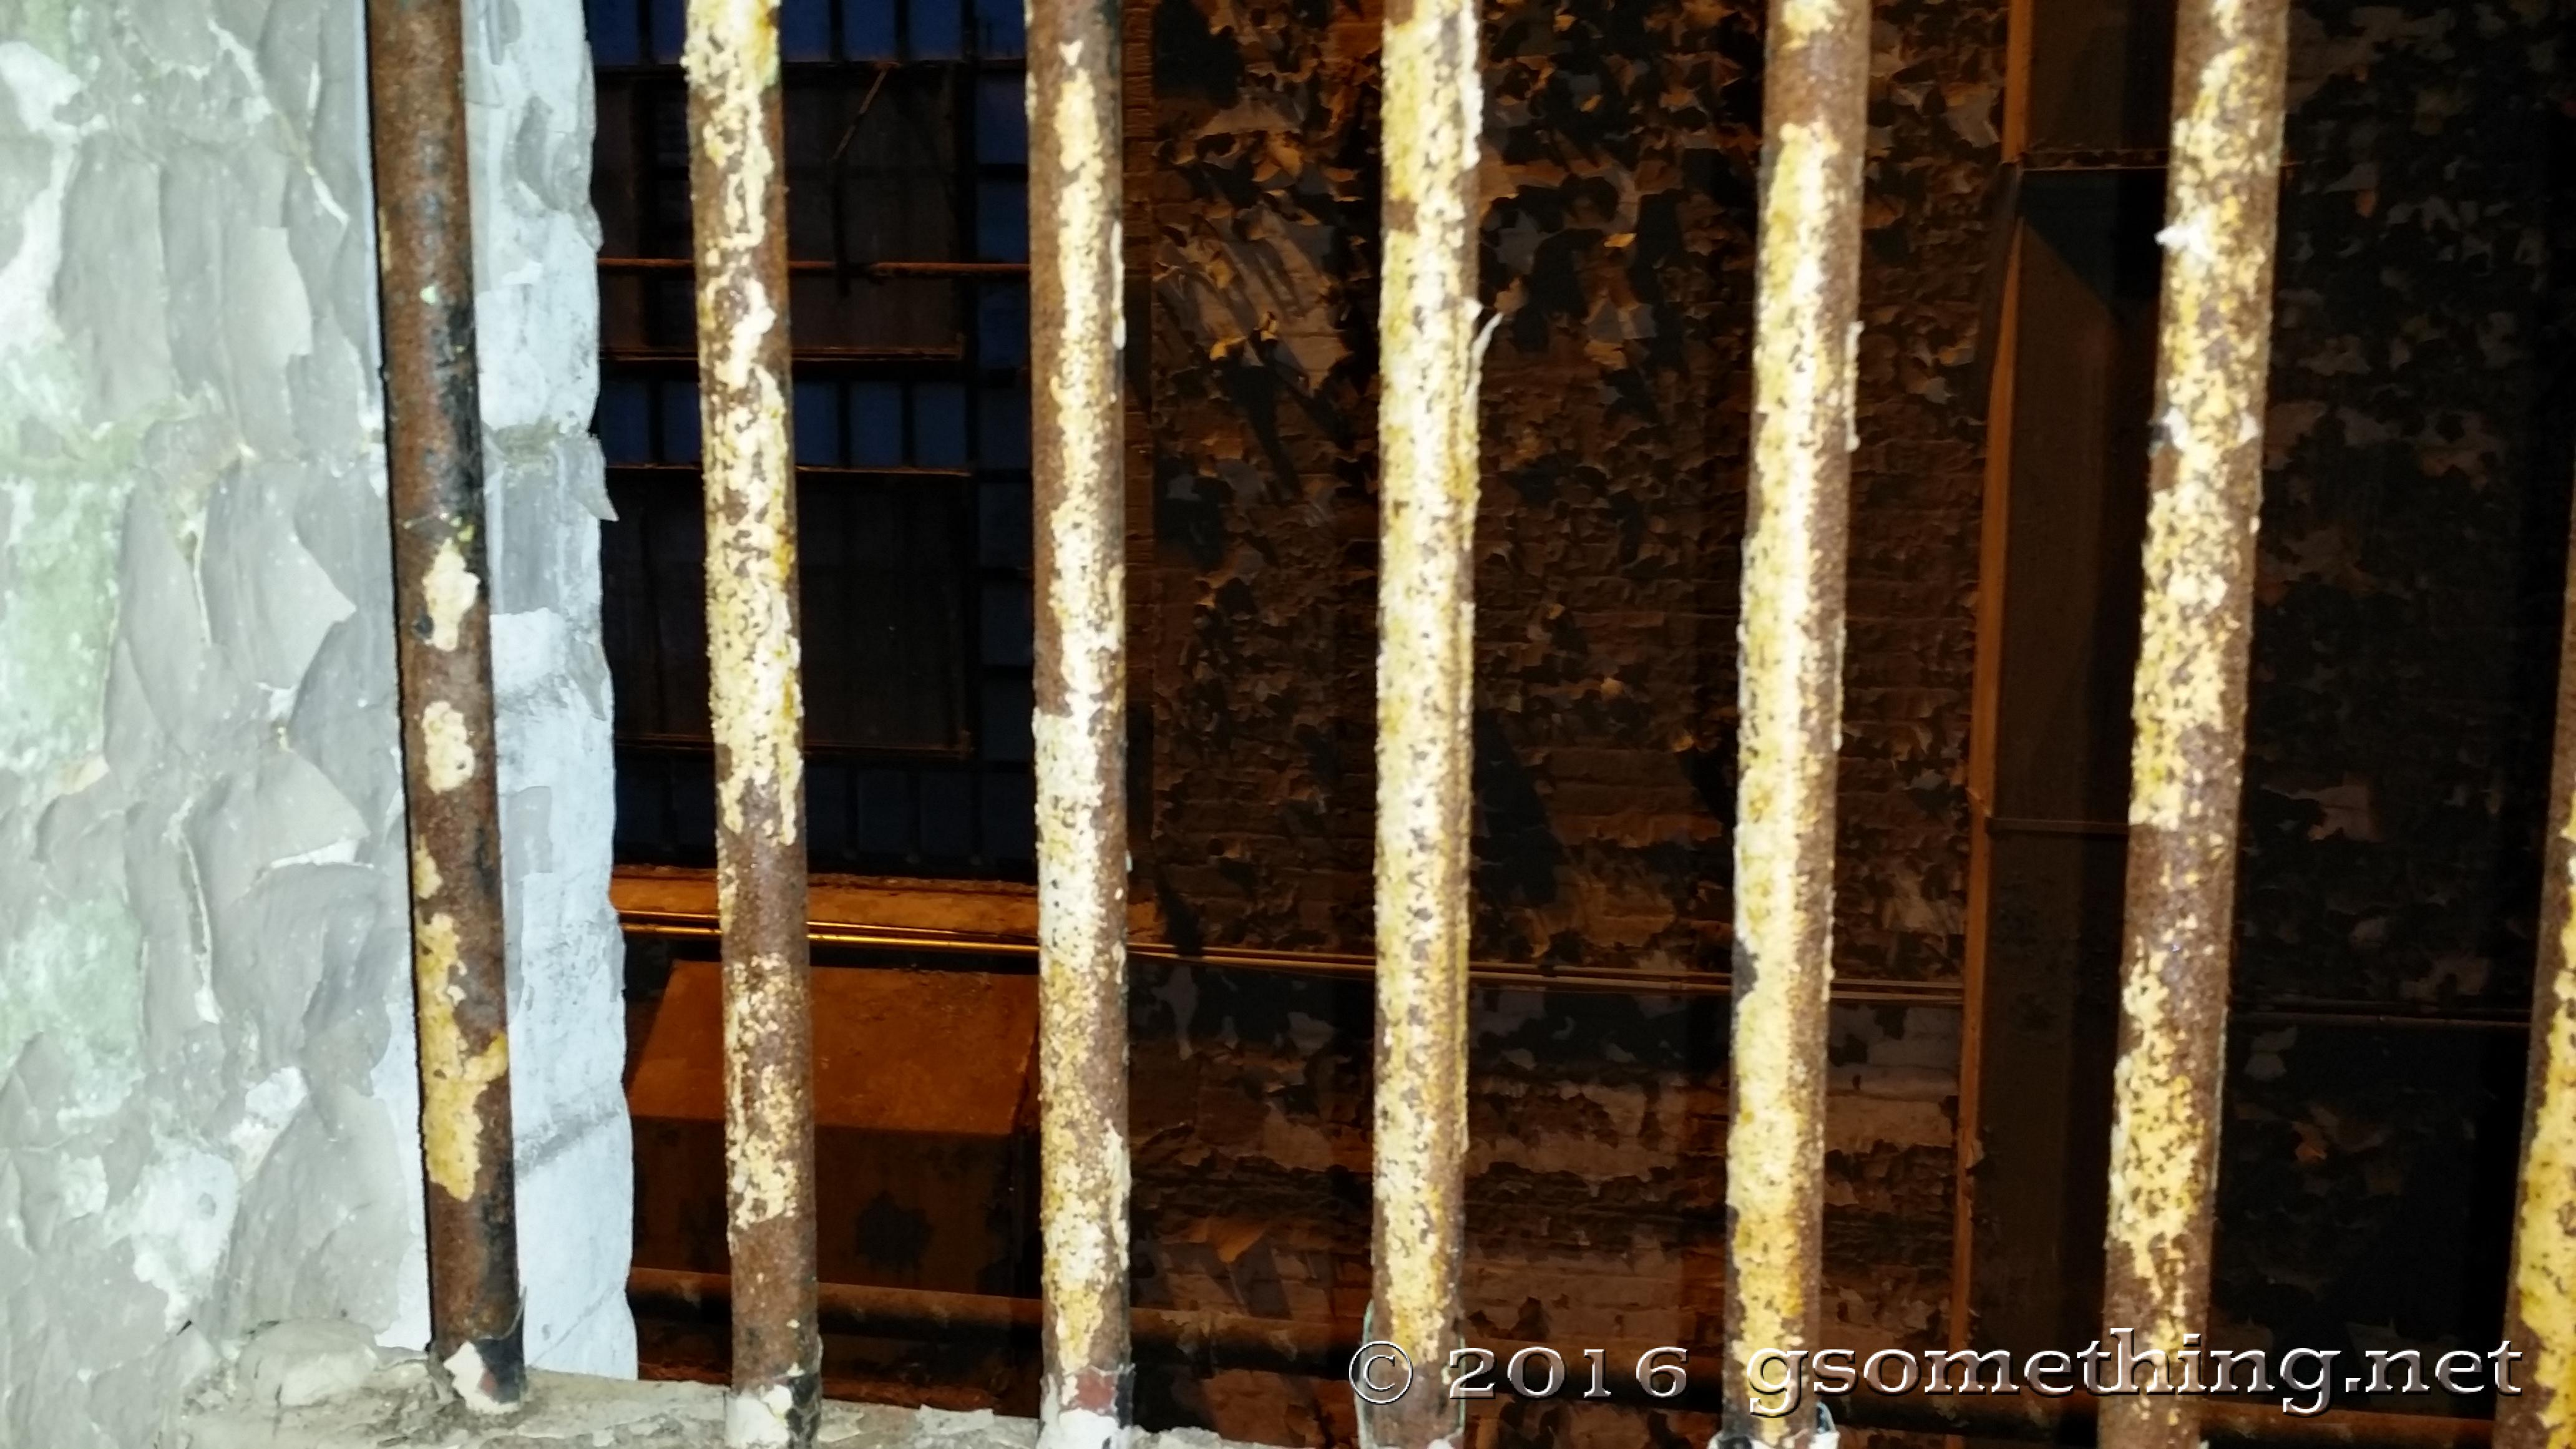 mansfield_reformatory_2nd_trip_48.jpg